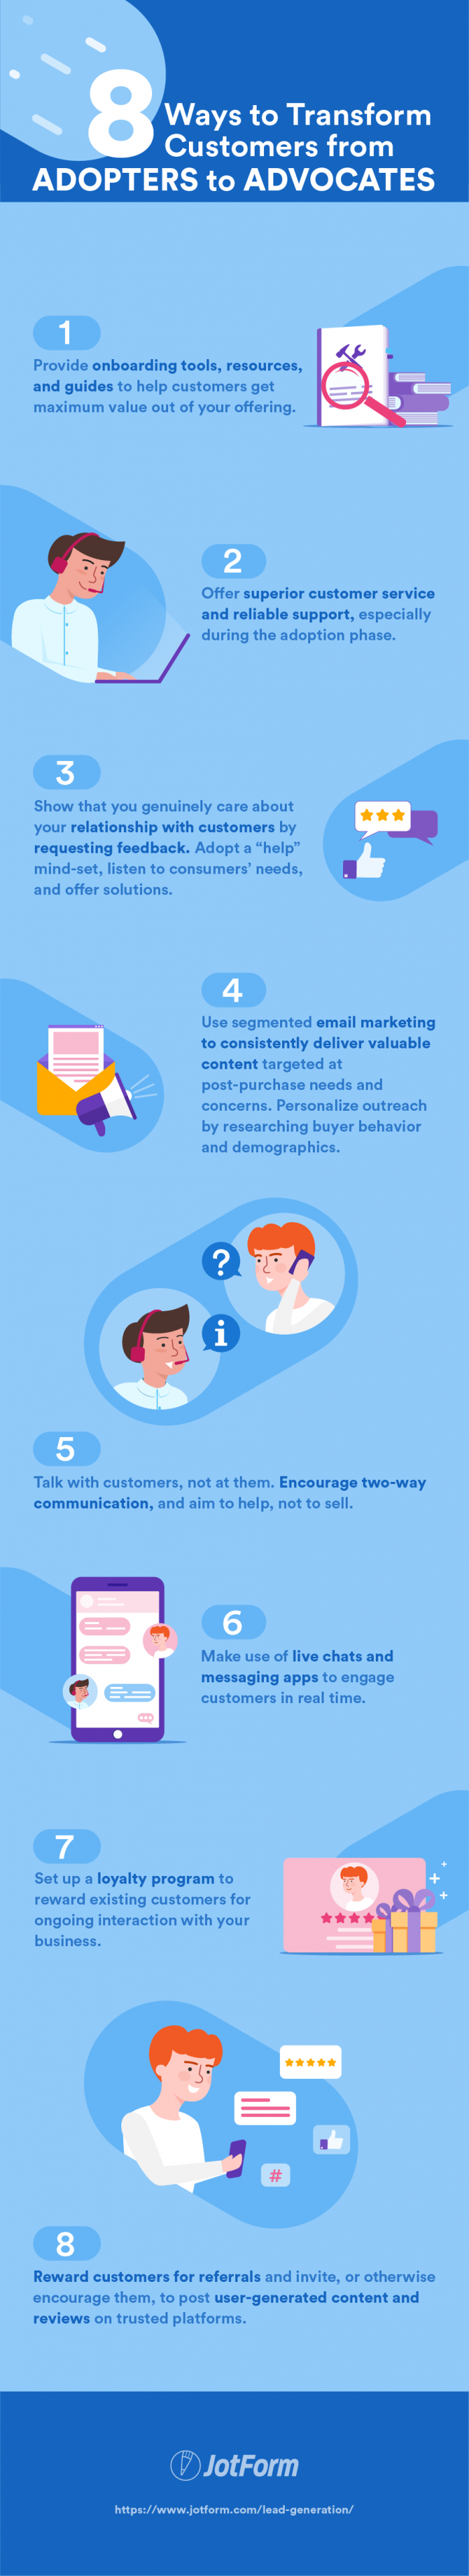 8 ways to transform customers from adopters to advocates